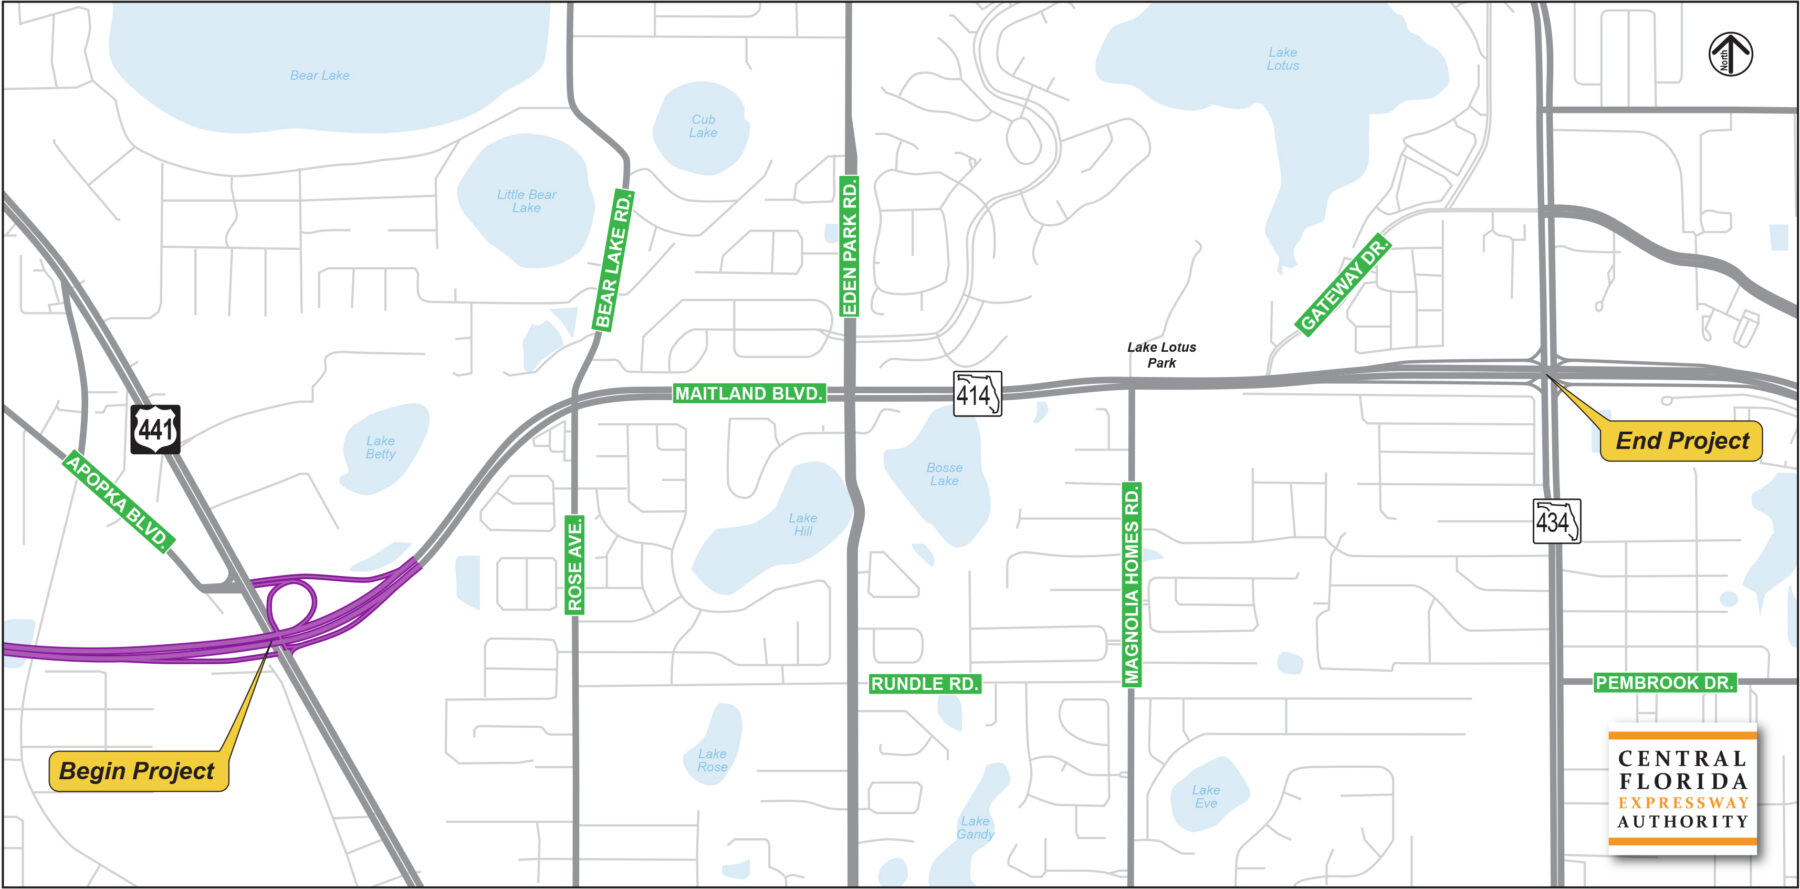 State Road 414 Project Map